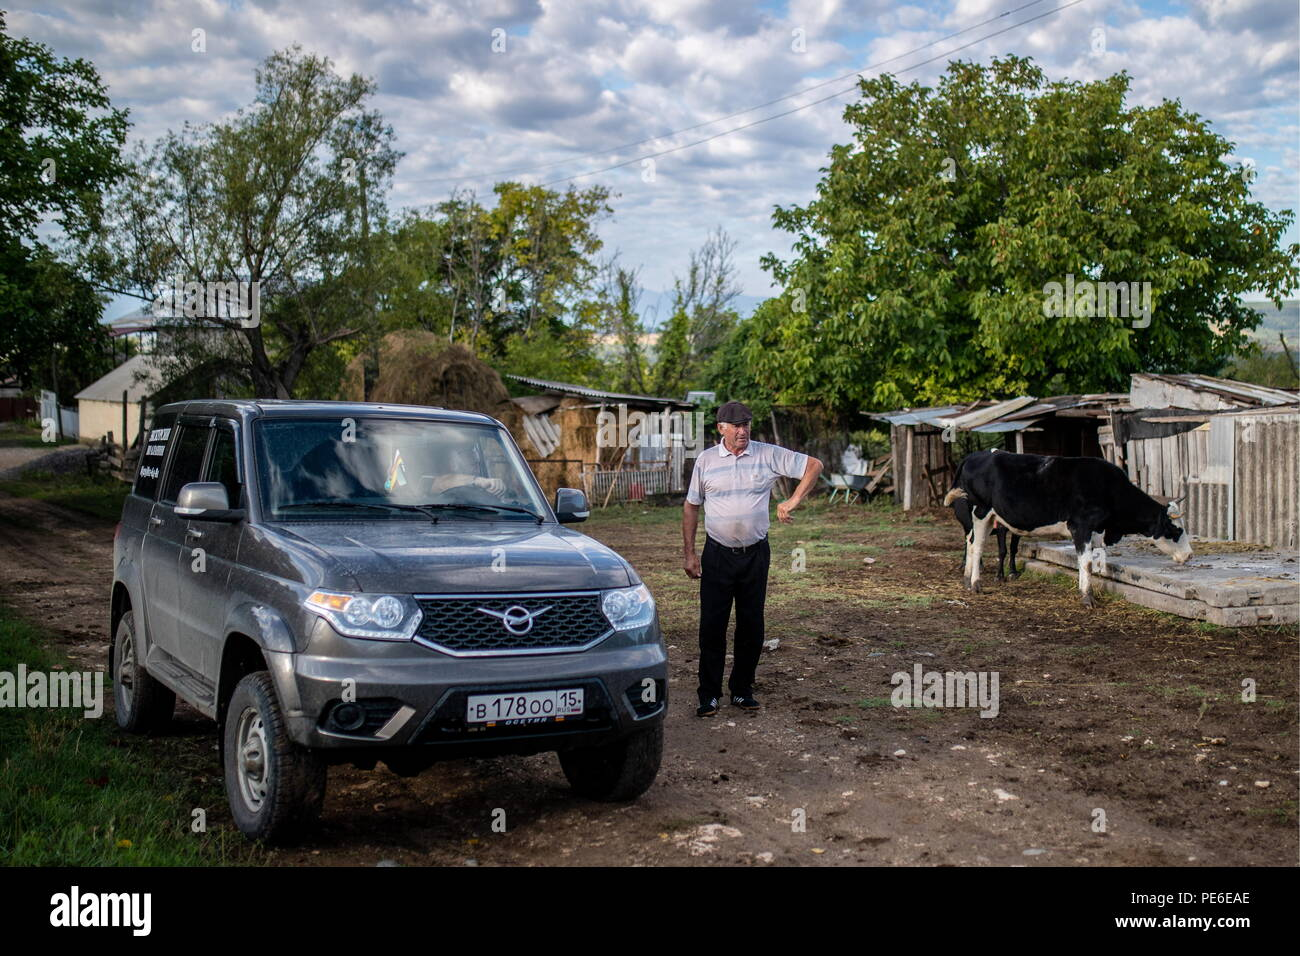 South Ossetia. 11th Aug, 2018. SOUTH OSSETIA - AUGUST 11, 2018: Alikhan Madzigov outside his house in the village of Khetagurovo, Tskhinvali District, South Ossetia; Alikhan and his wife Margarita, 63, have been running a farm since their house was restored after the 2008 South Ossetian-Georgian military conflict. Sergei Bobylev/TASS Credit: ITAR-TASS News Agency/Alamy Live News - Stock Image